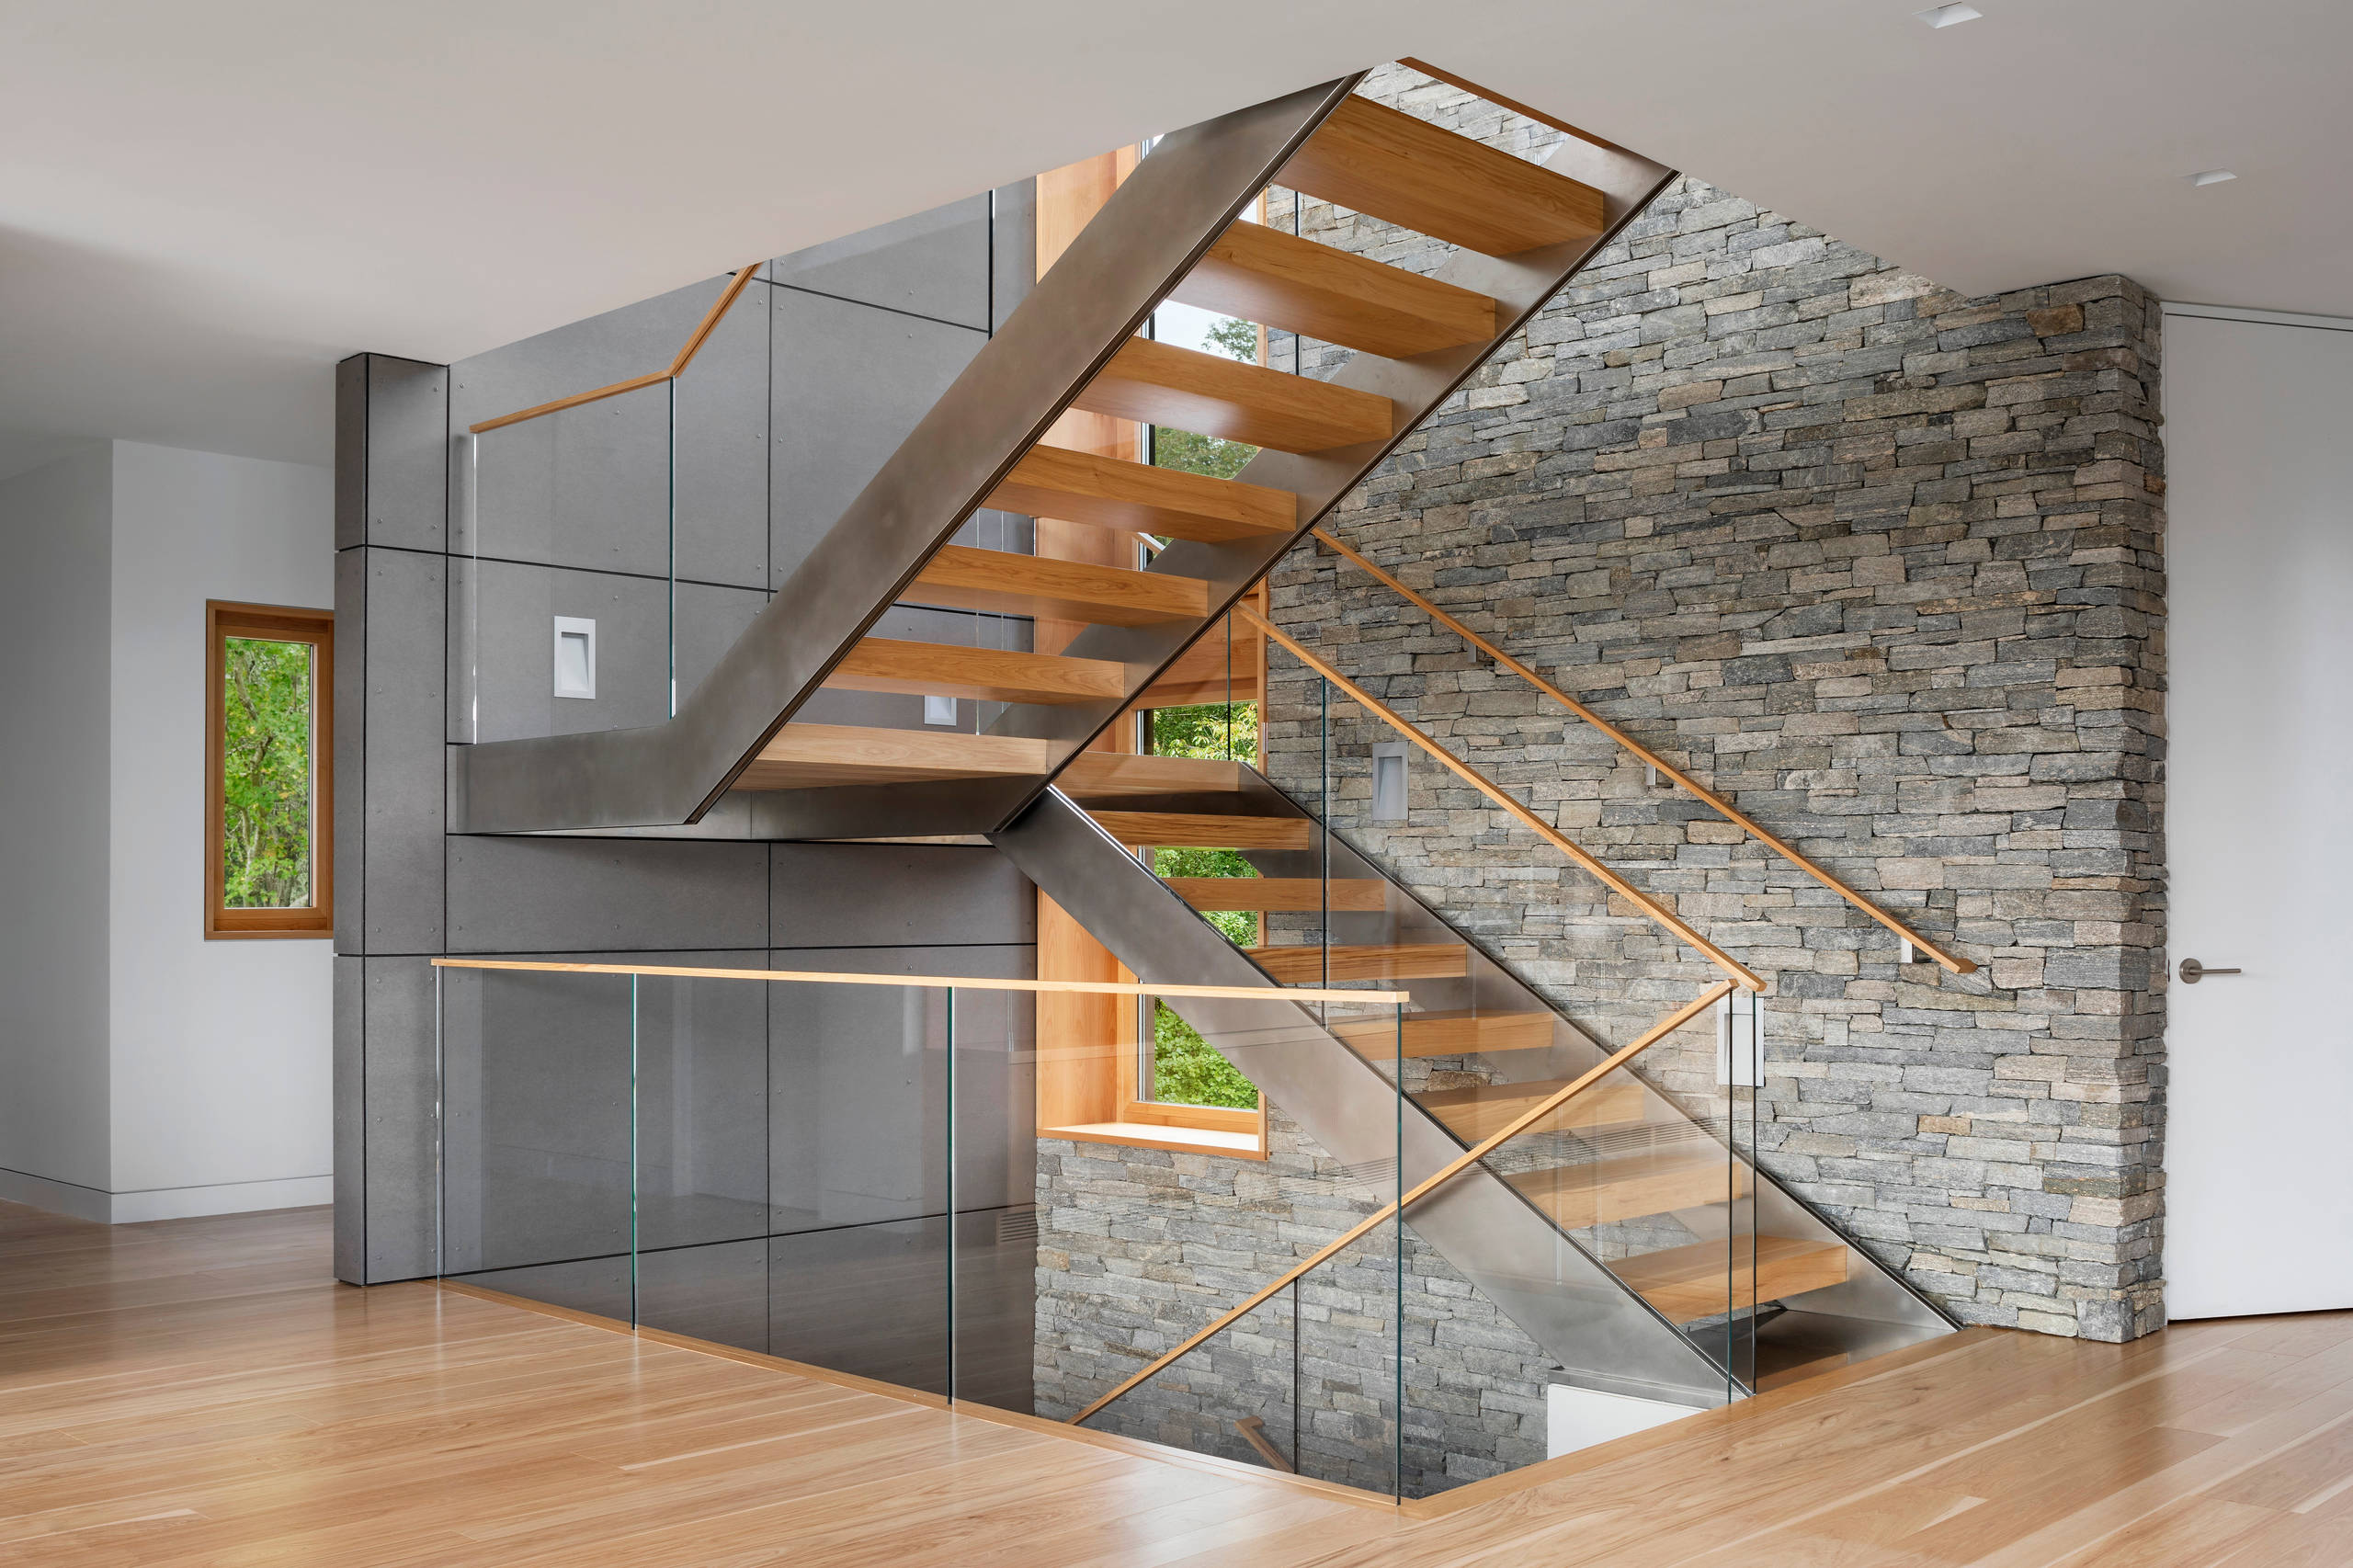 75 Beautiful Modern Staircase Pictures Ideas September 2020 Houzz